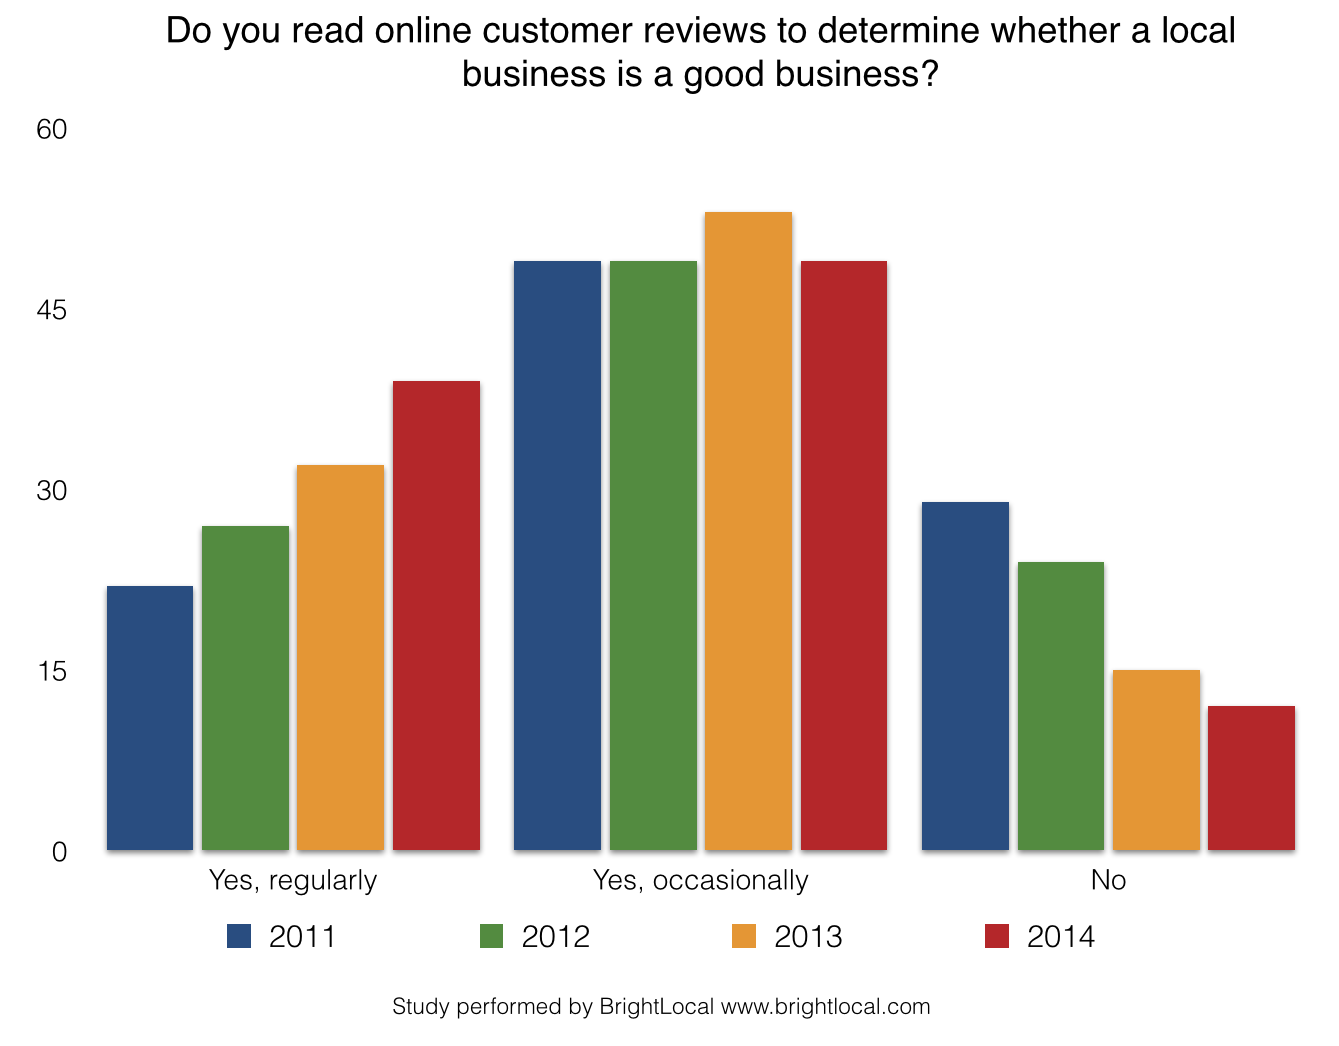 Do you read online reviews to decide buying from a local business